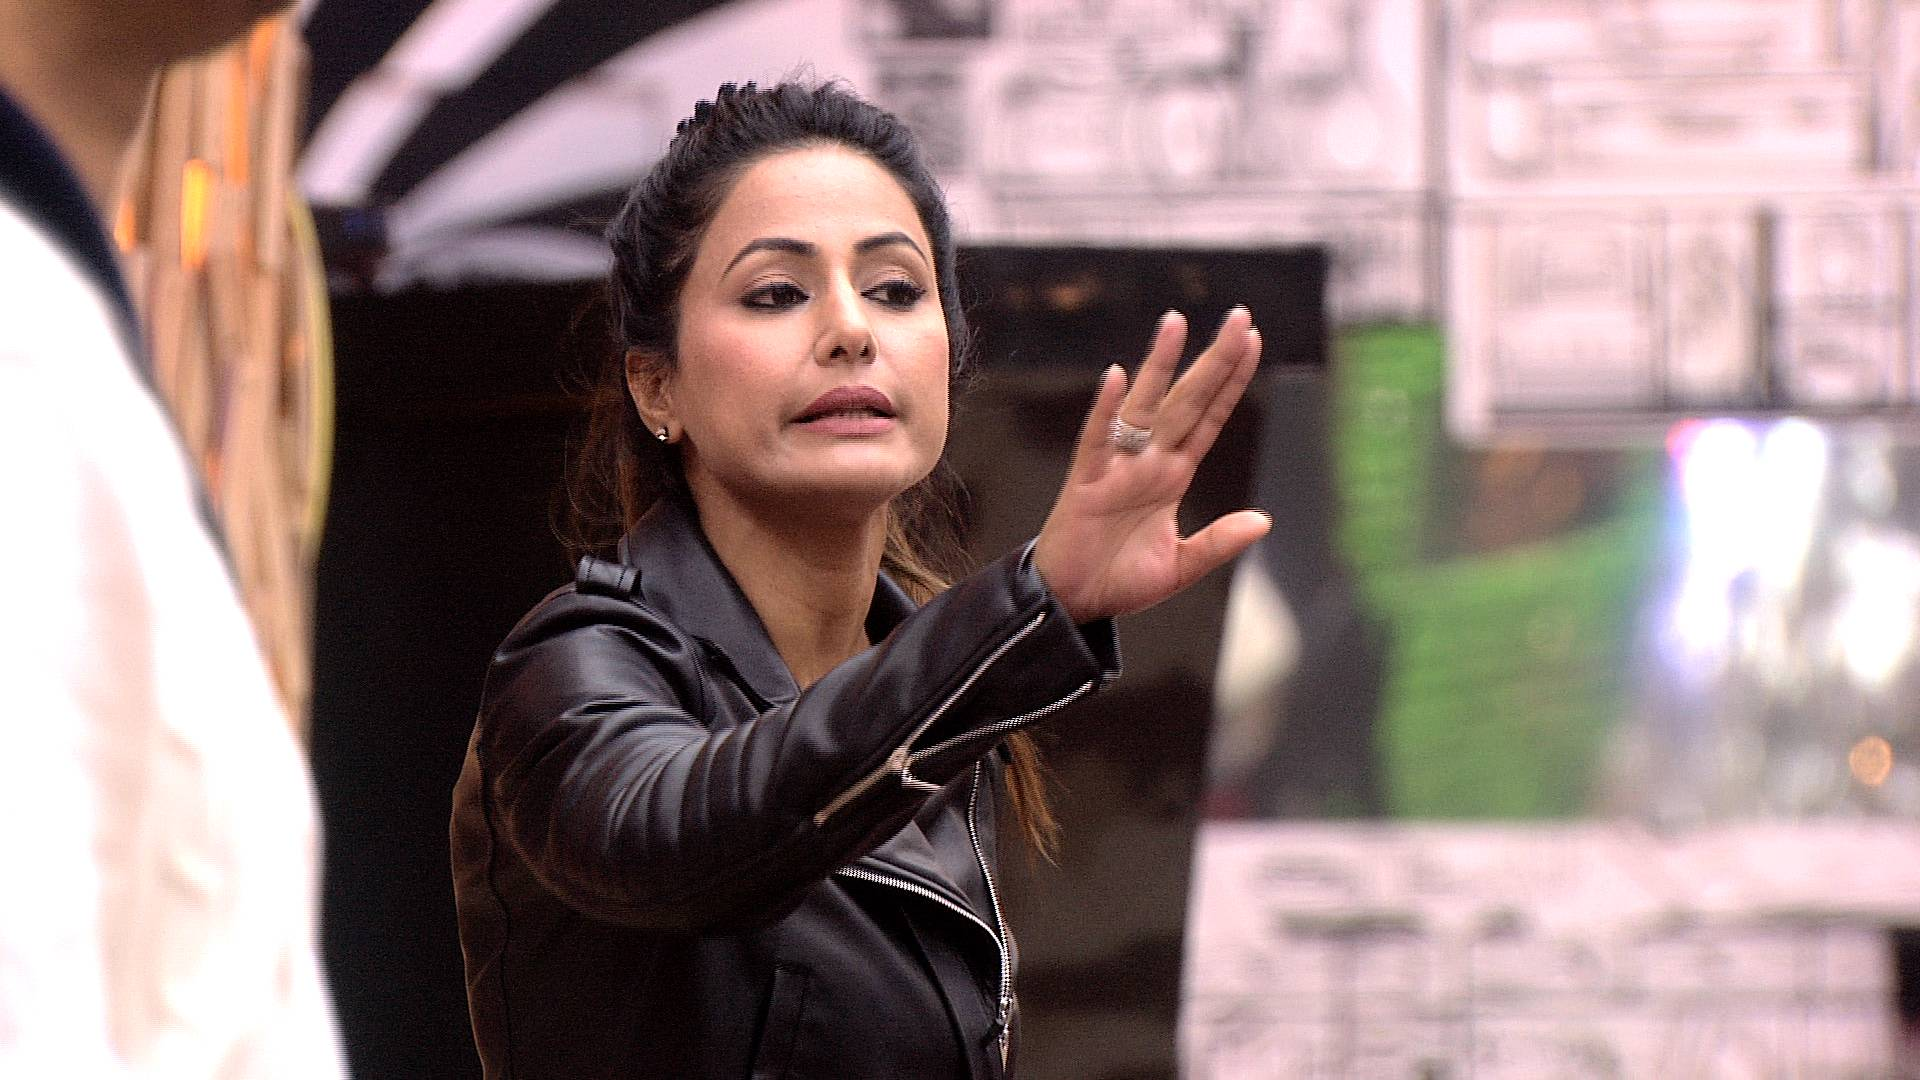 Bigg Boss 11: Hina Khan goes against Shilpa Shinde once again, know why!